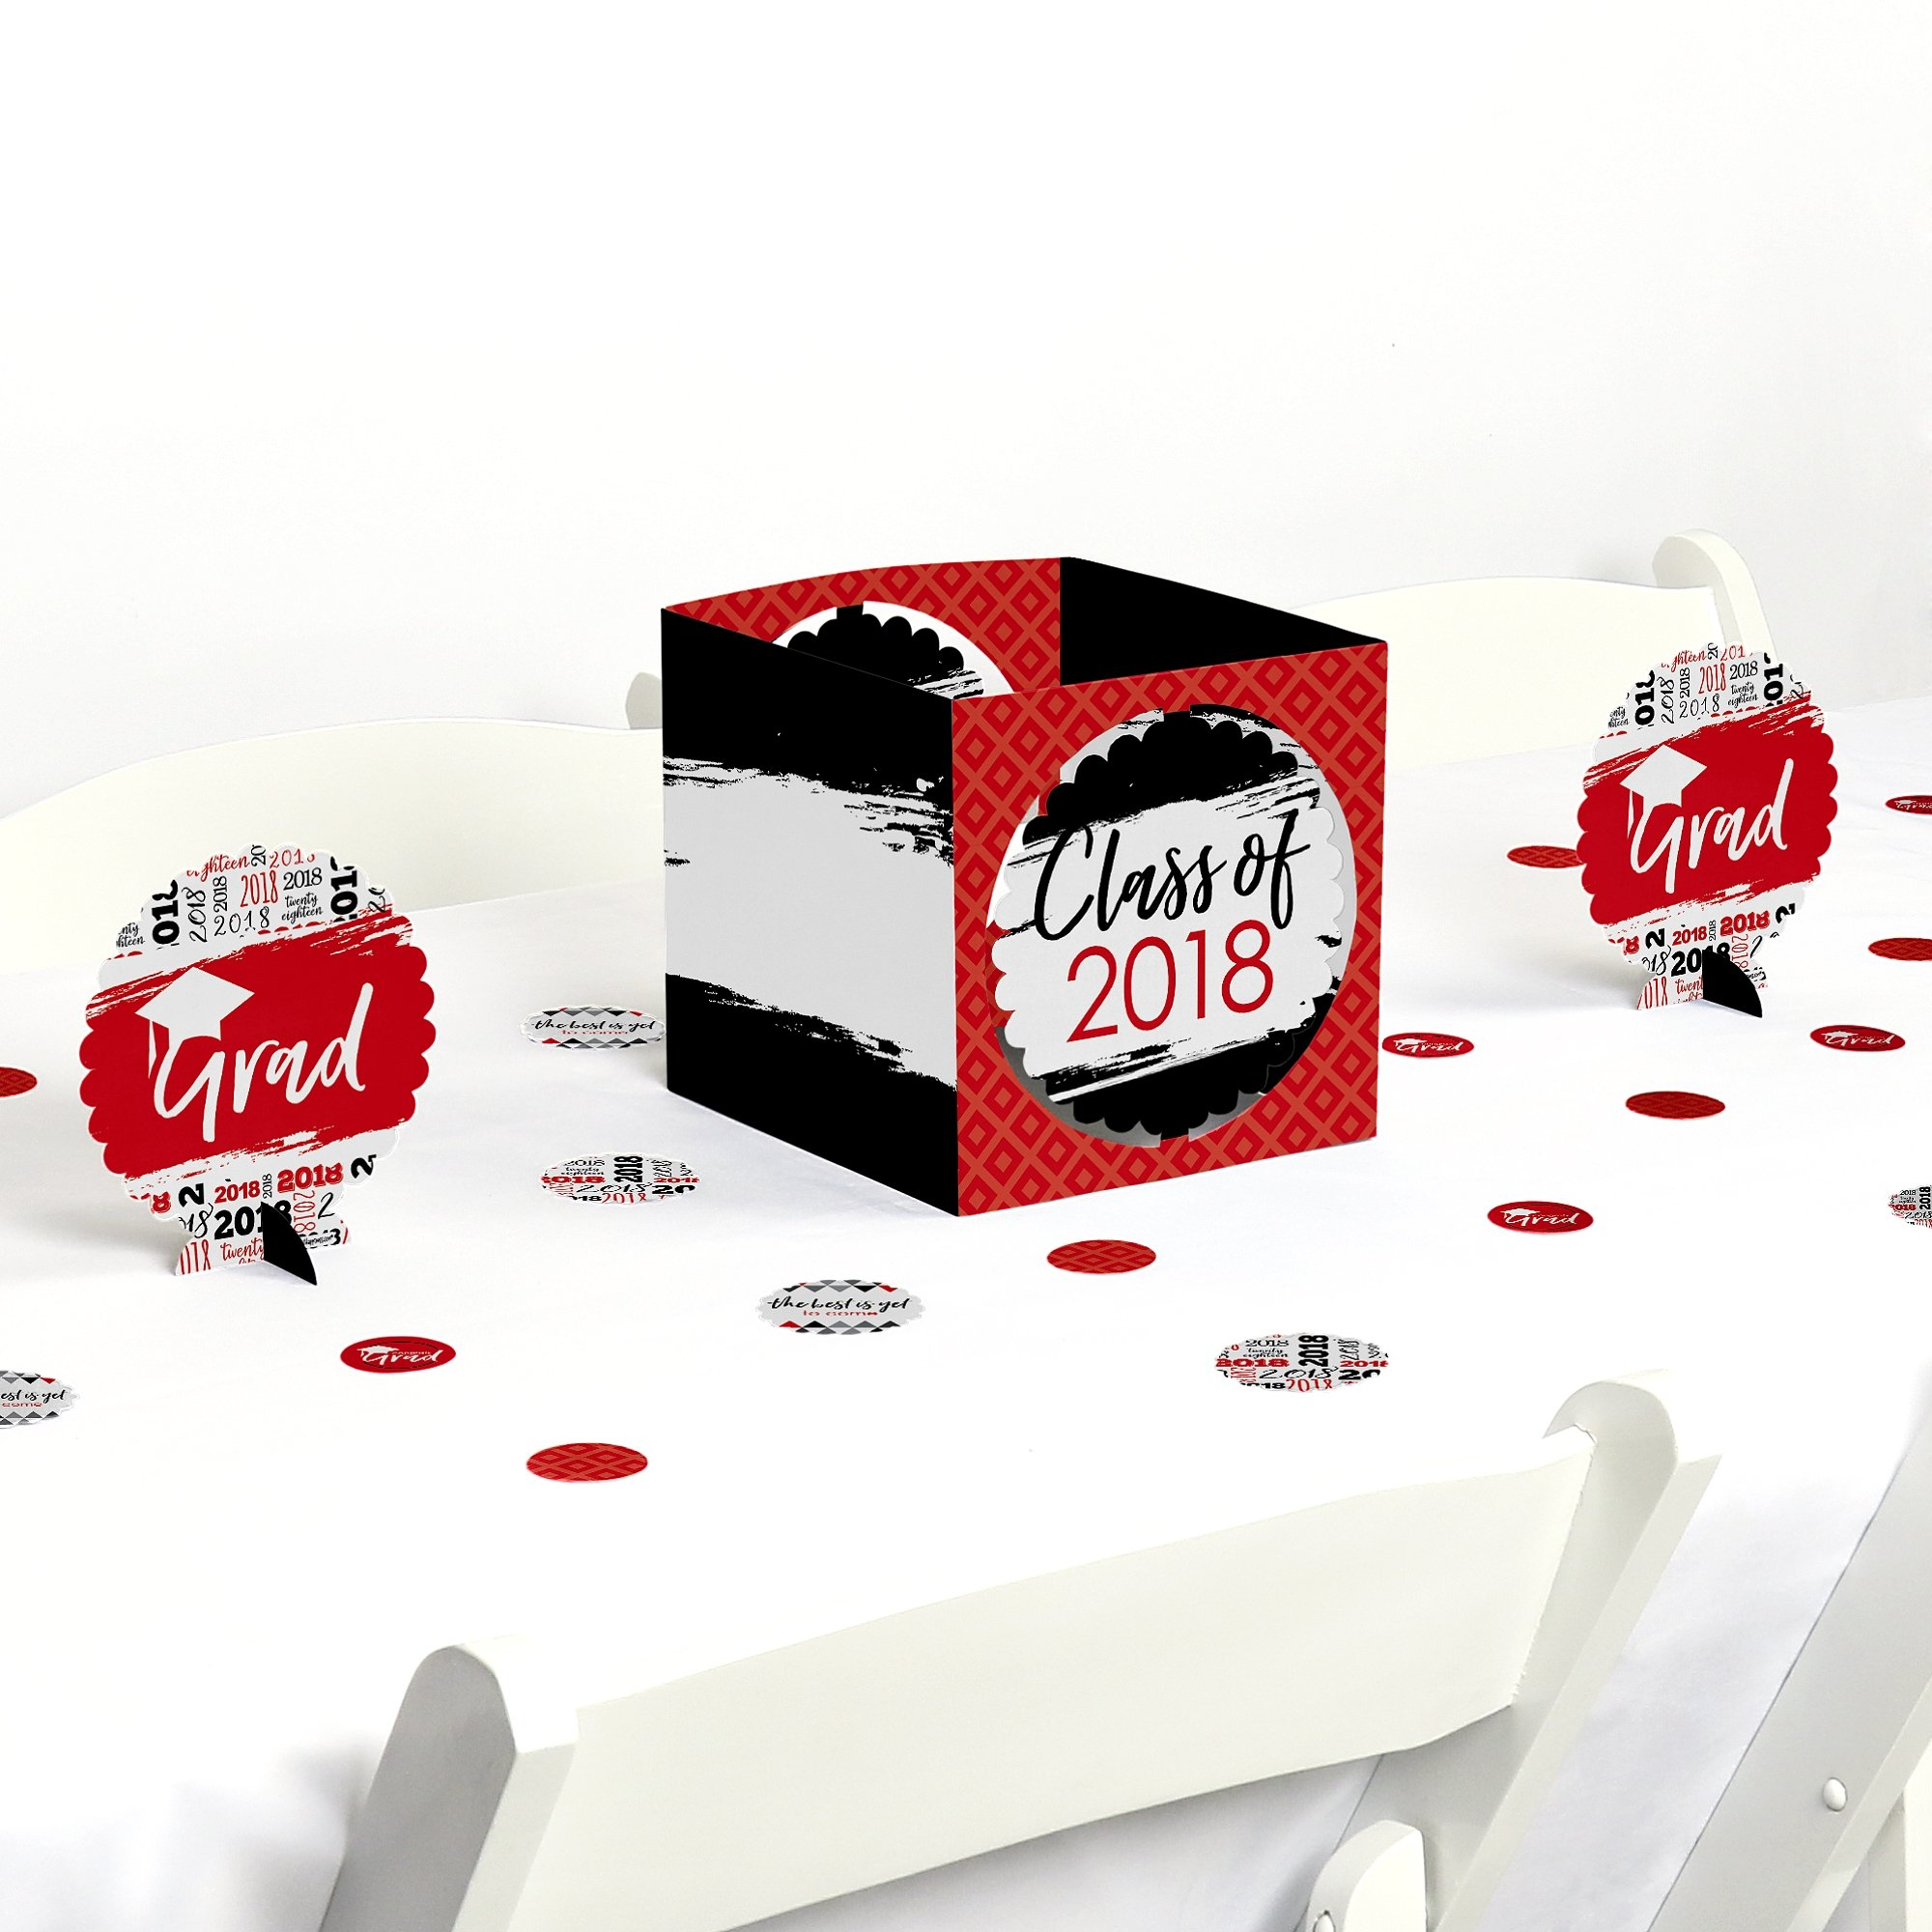 Red Grad - Best is Yet to Come - Red 2018 Graduation Party Centerpiece & Table Decoration Kit